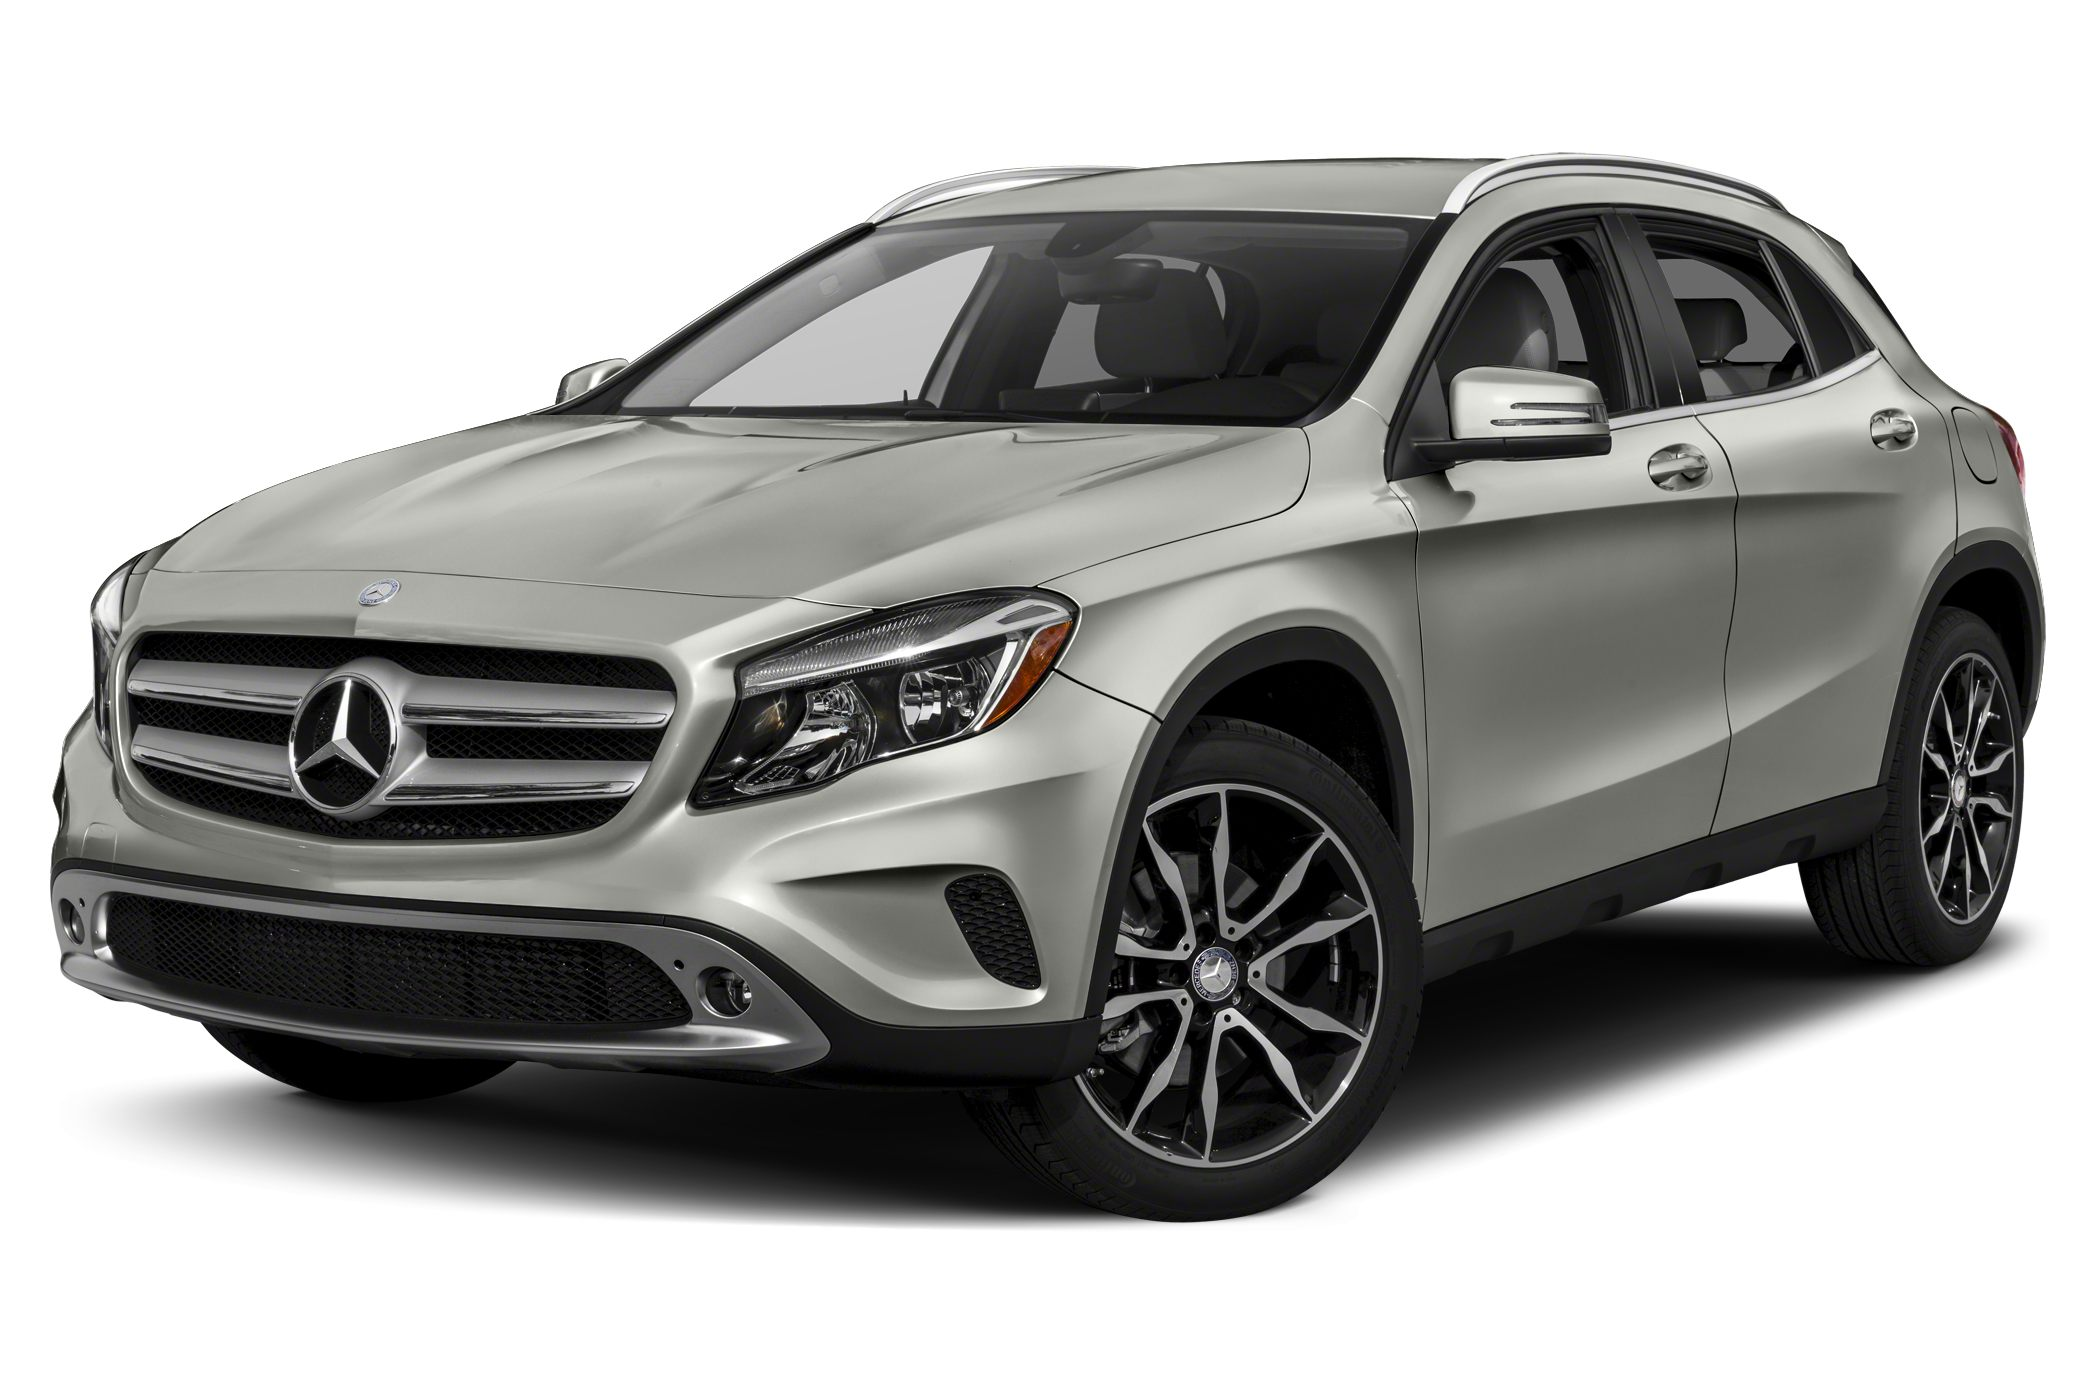 2015 Mercedes-Benz GLA-Class GLA250 4MATIC SUV for sale in Tulsa for $39,155 with 0 miles.